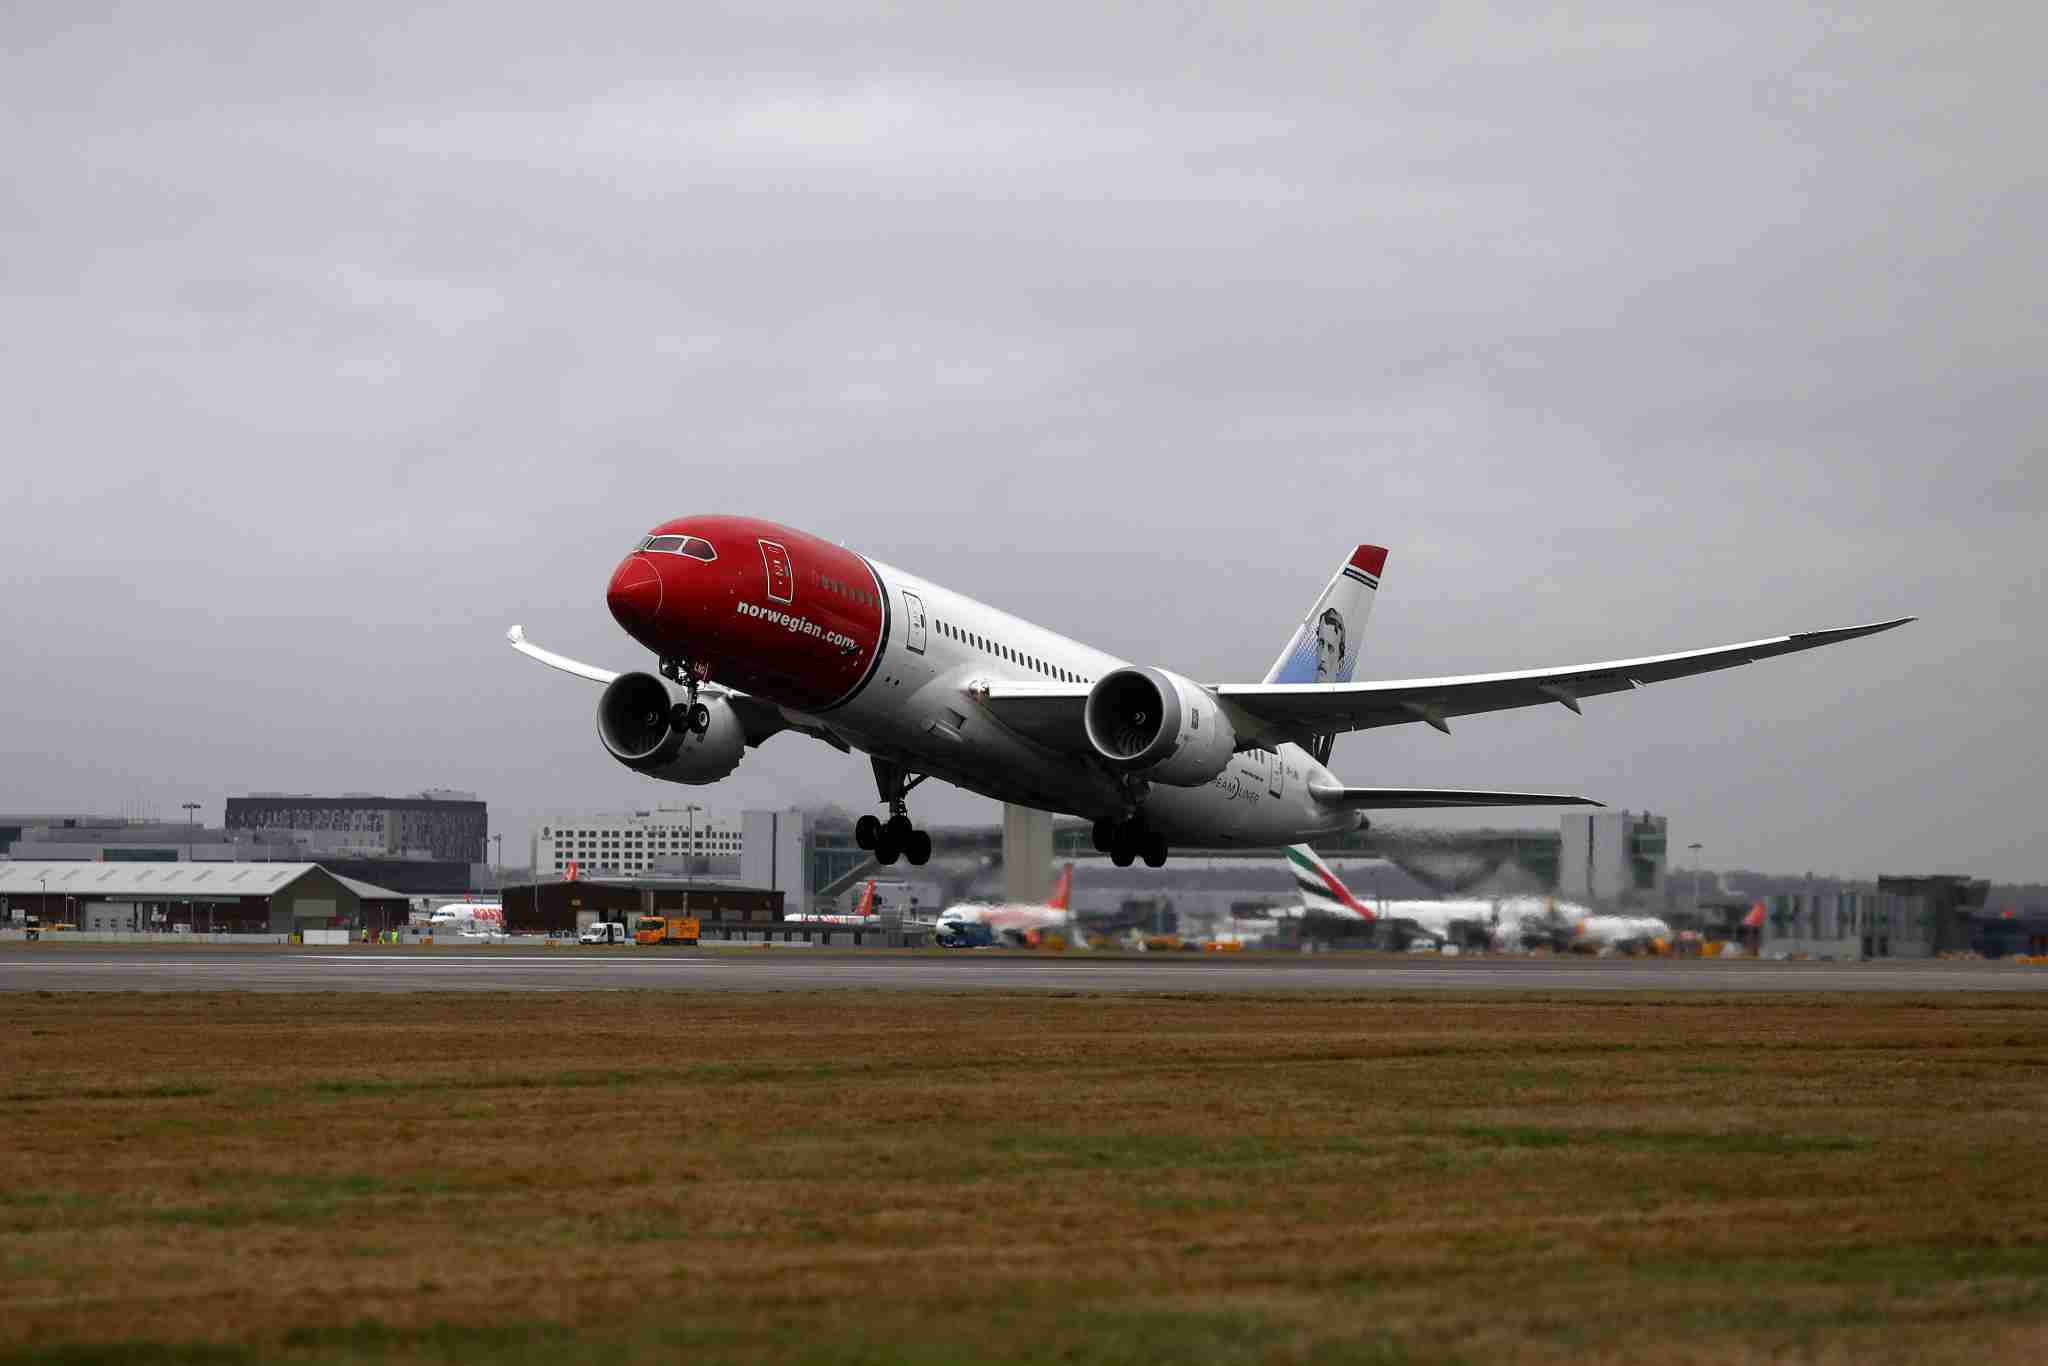 A Boeing Co. 737 passenger aircraft, operated by Norwegian Air Shuttle ASA, takes off at London Gatwick Airport in Crawley, U.K., on Tuesday, Jan. 10, 2017. Norwegian attracted 29.3 million passengers last year, a 14 percent increase that